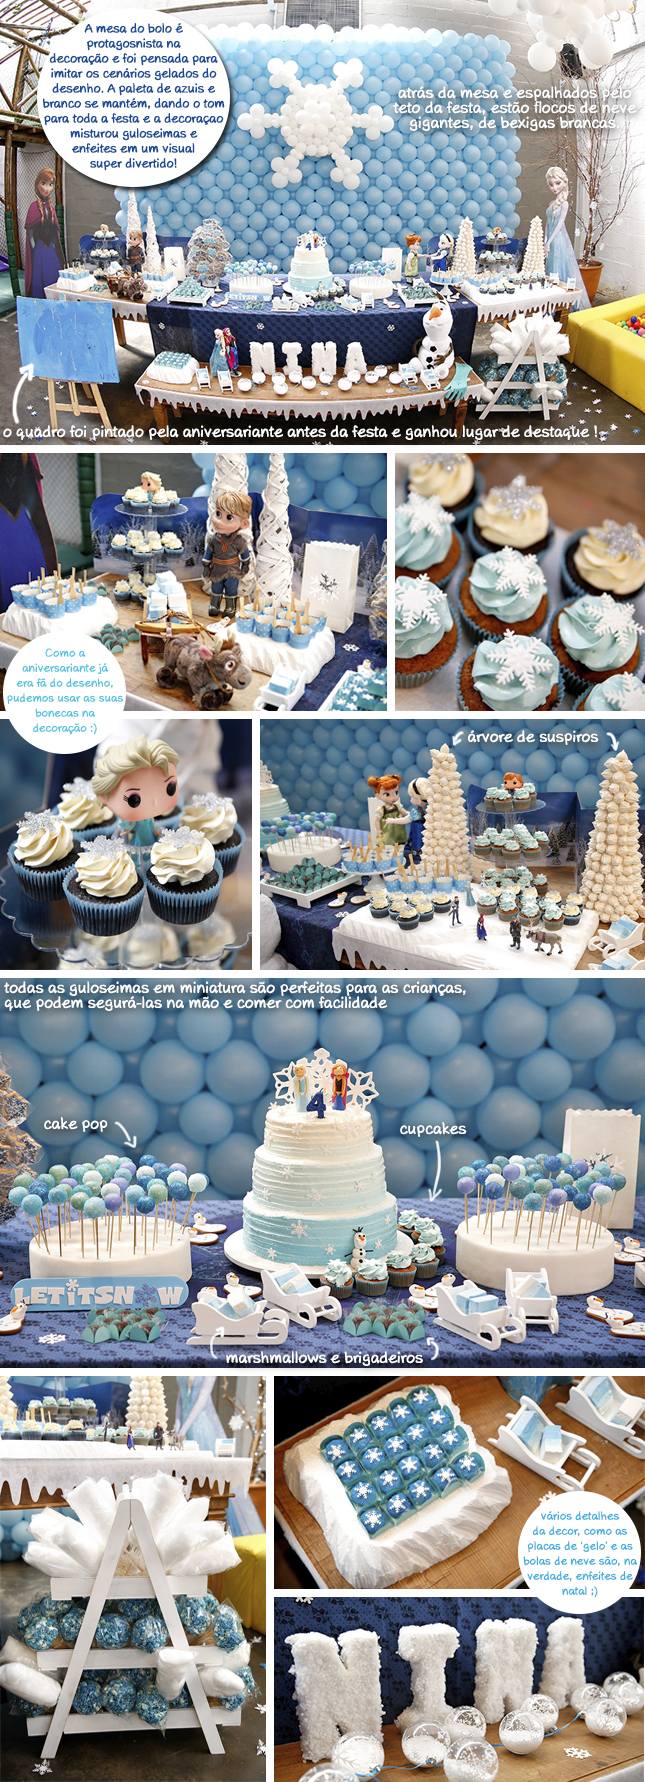 decoradornet-frozen-05